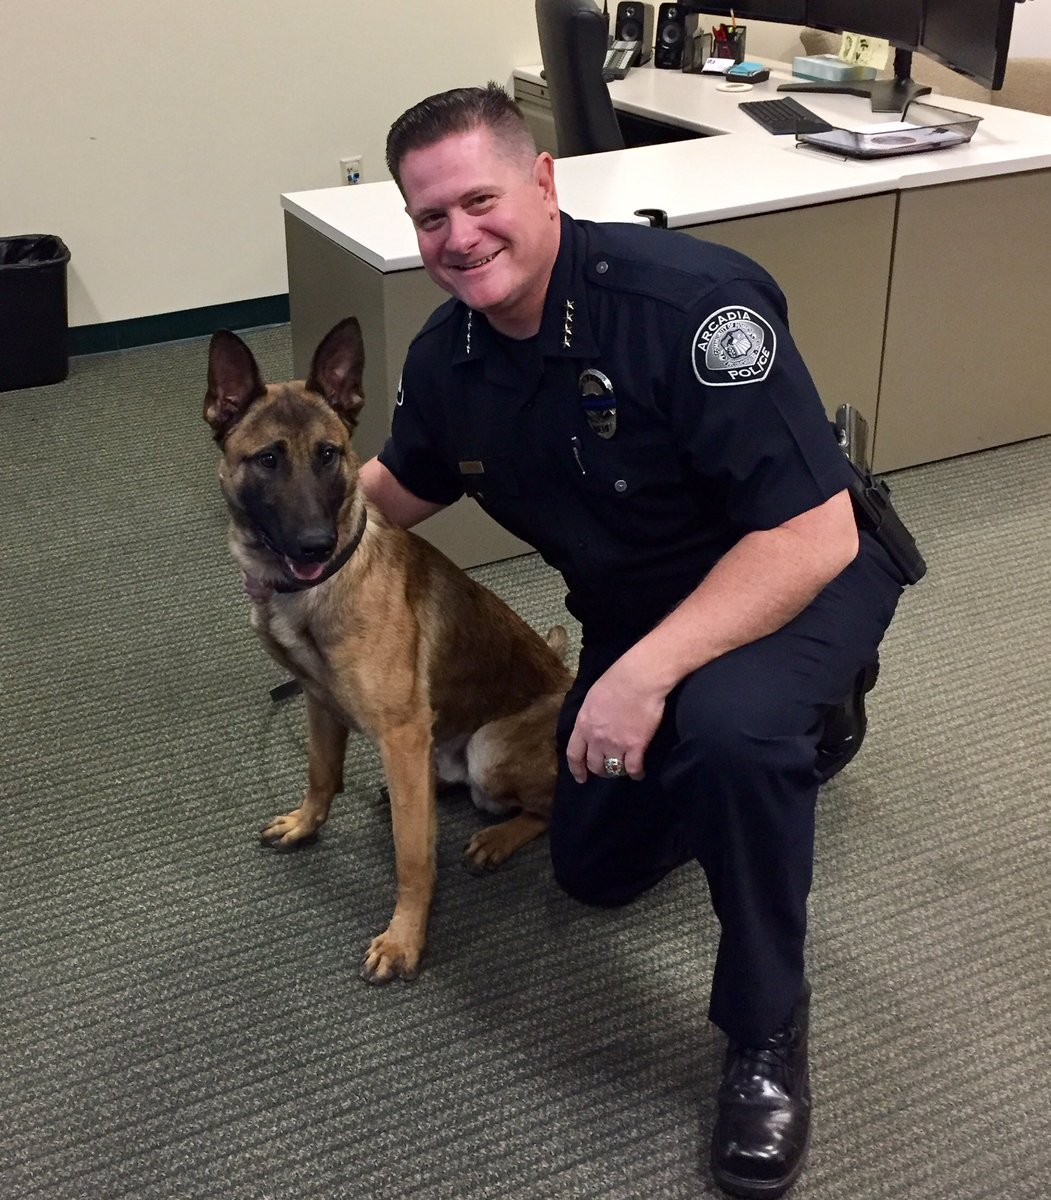 Chief Guthrie welcomes #K9 Officer Zoli for his first Patrol shift! #APDCA #GoldCoastK9 https://t.co/hmMDPzZU1w